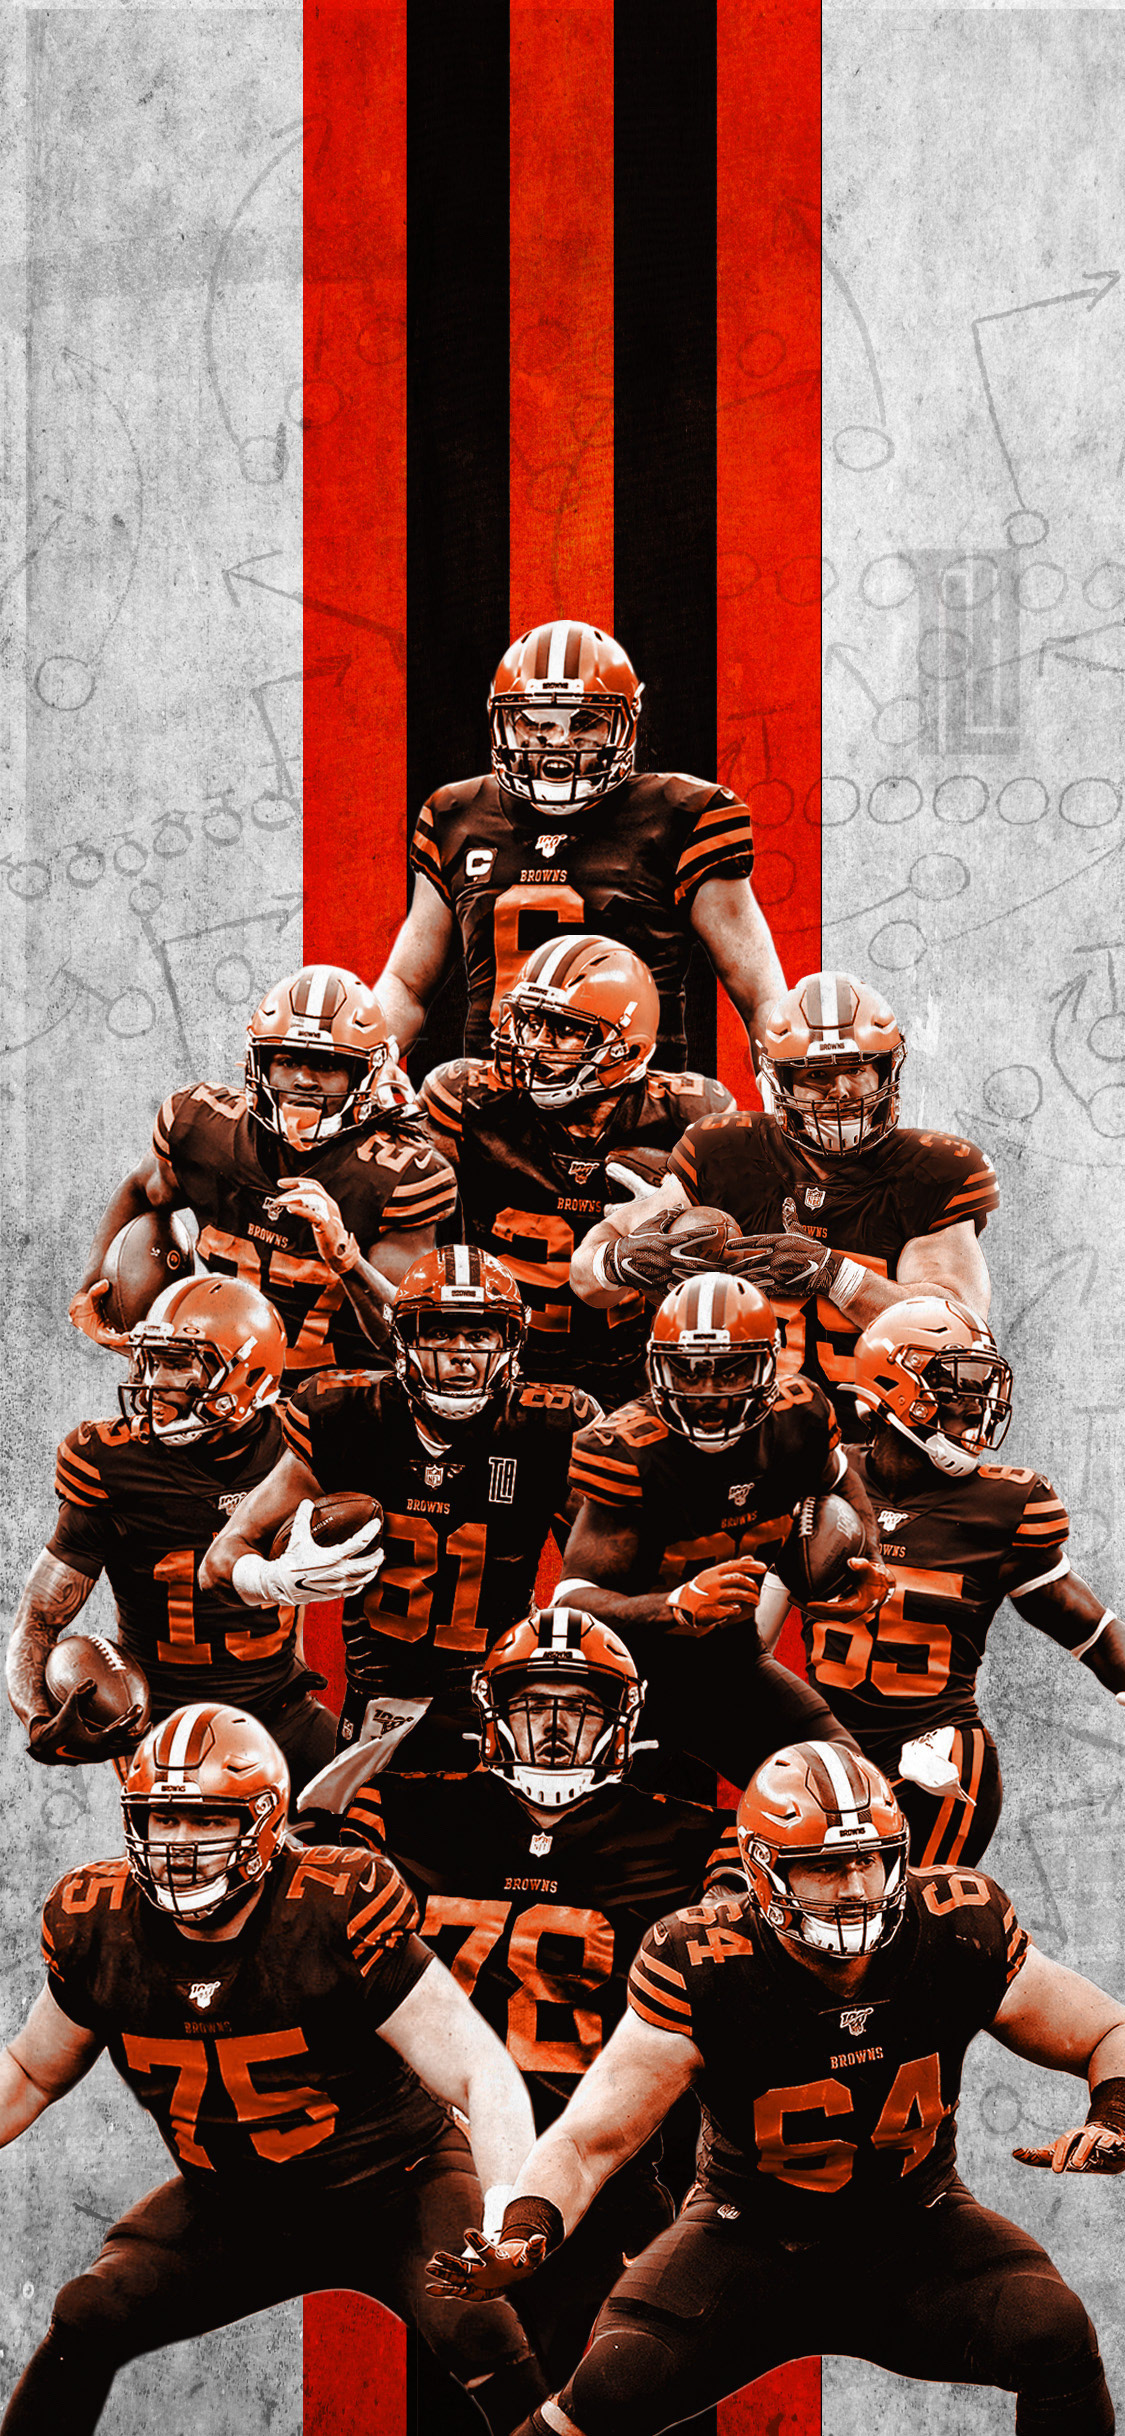 2020 Cleveland browns IPhone Wallpaper on Behance 1125x2436